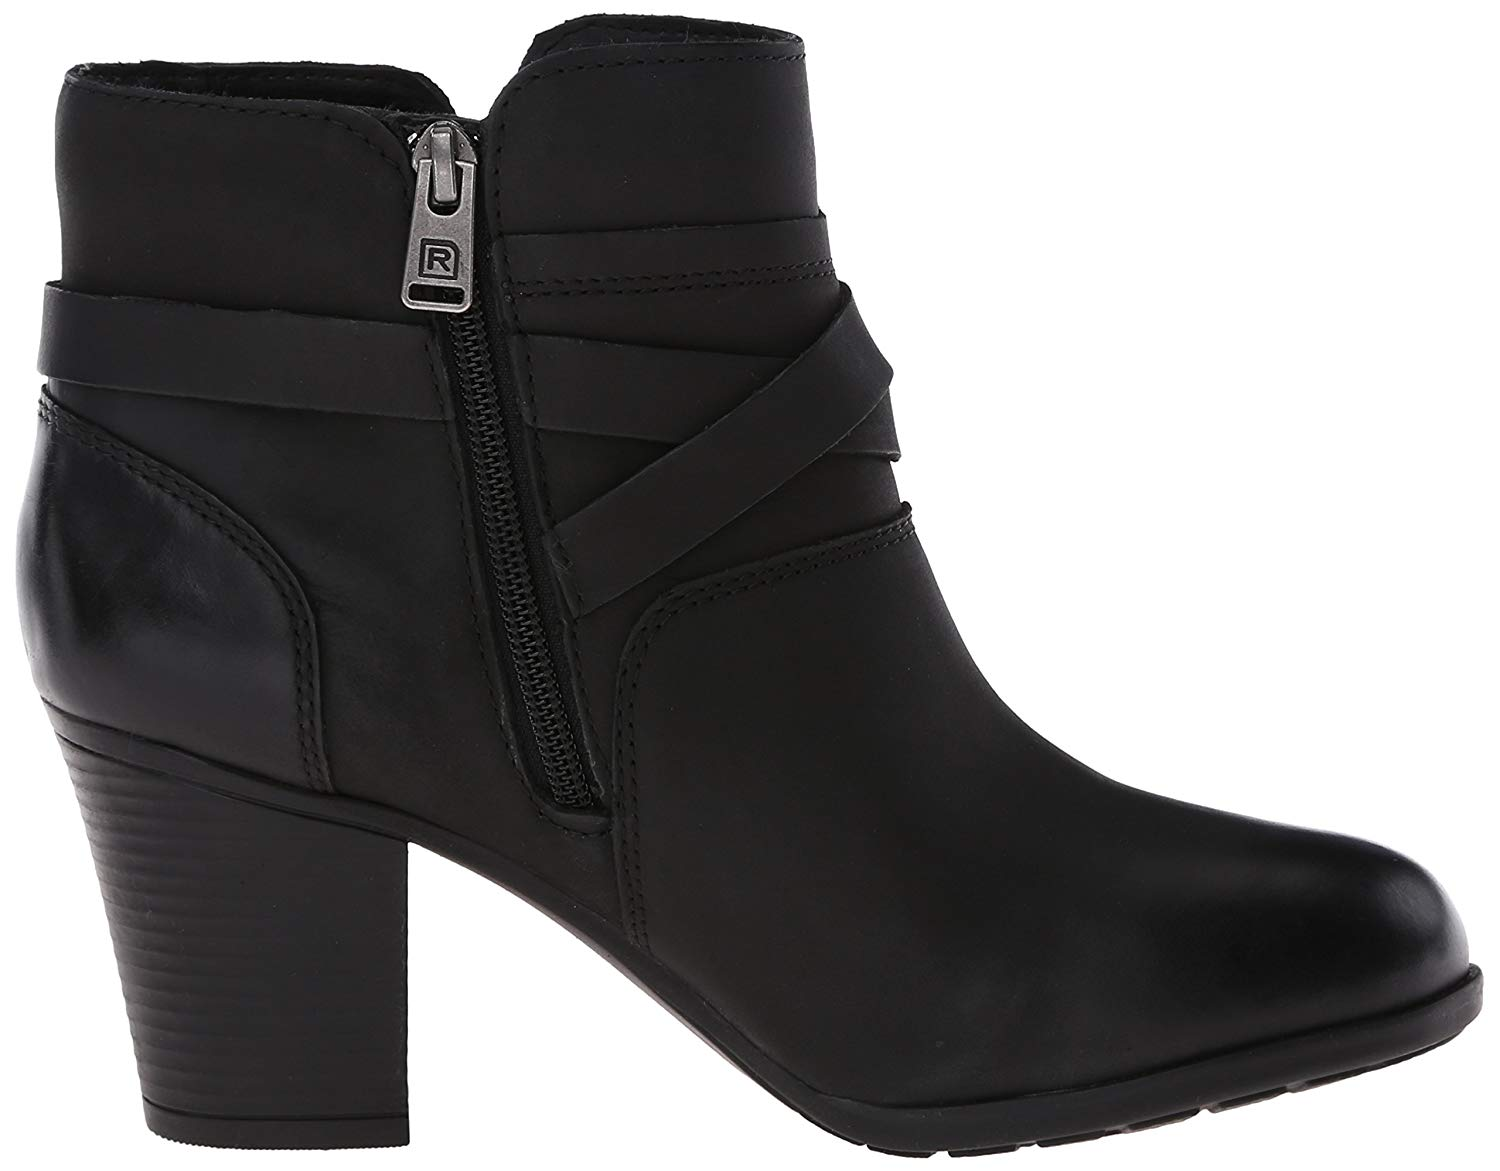 Details about Rockport Women's City Casuals Catriona Buckle Boot, Black Nubuck, Size 6.0 WaNg